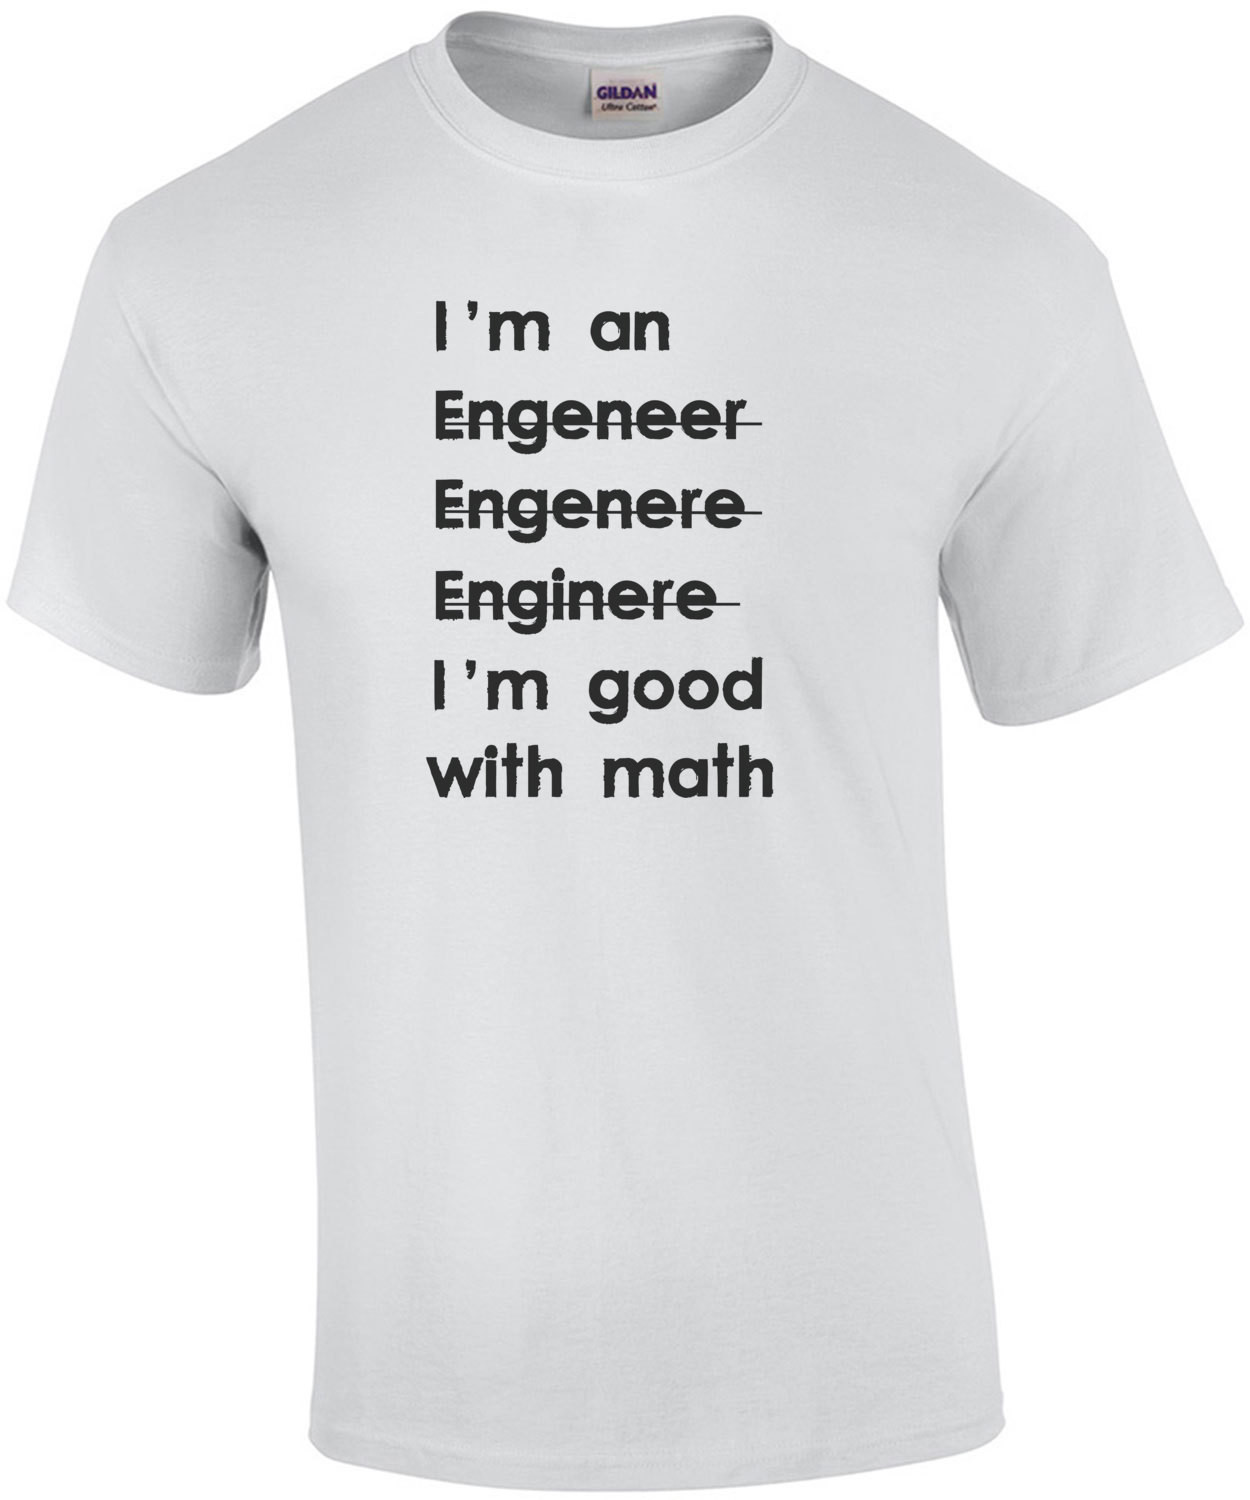 I'm an engineer I'm good with math - Funny Engineer